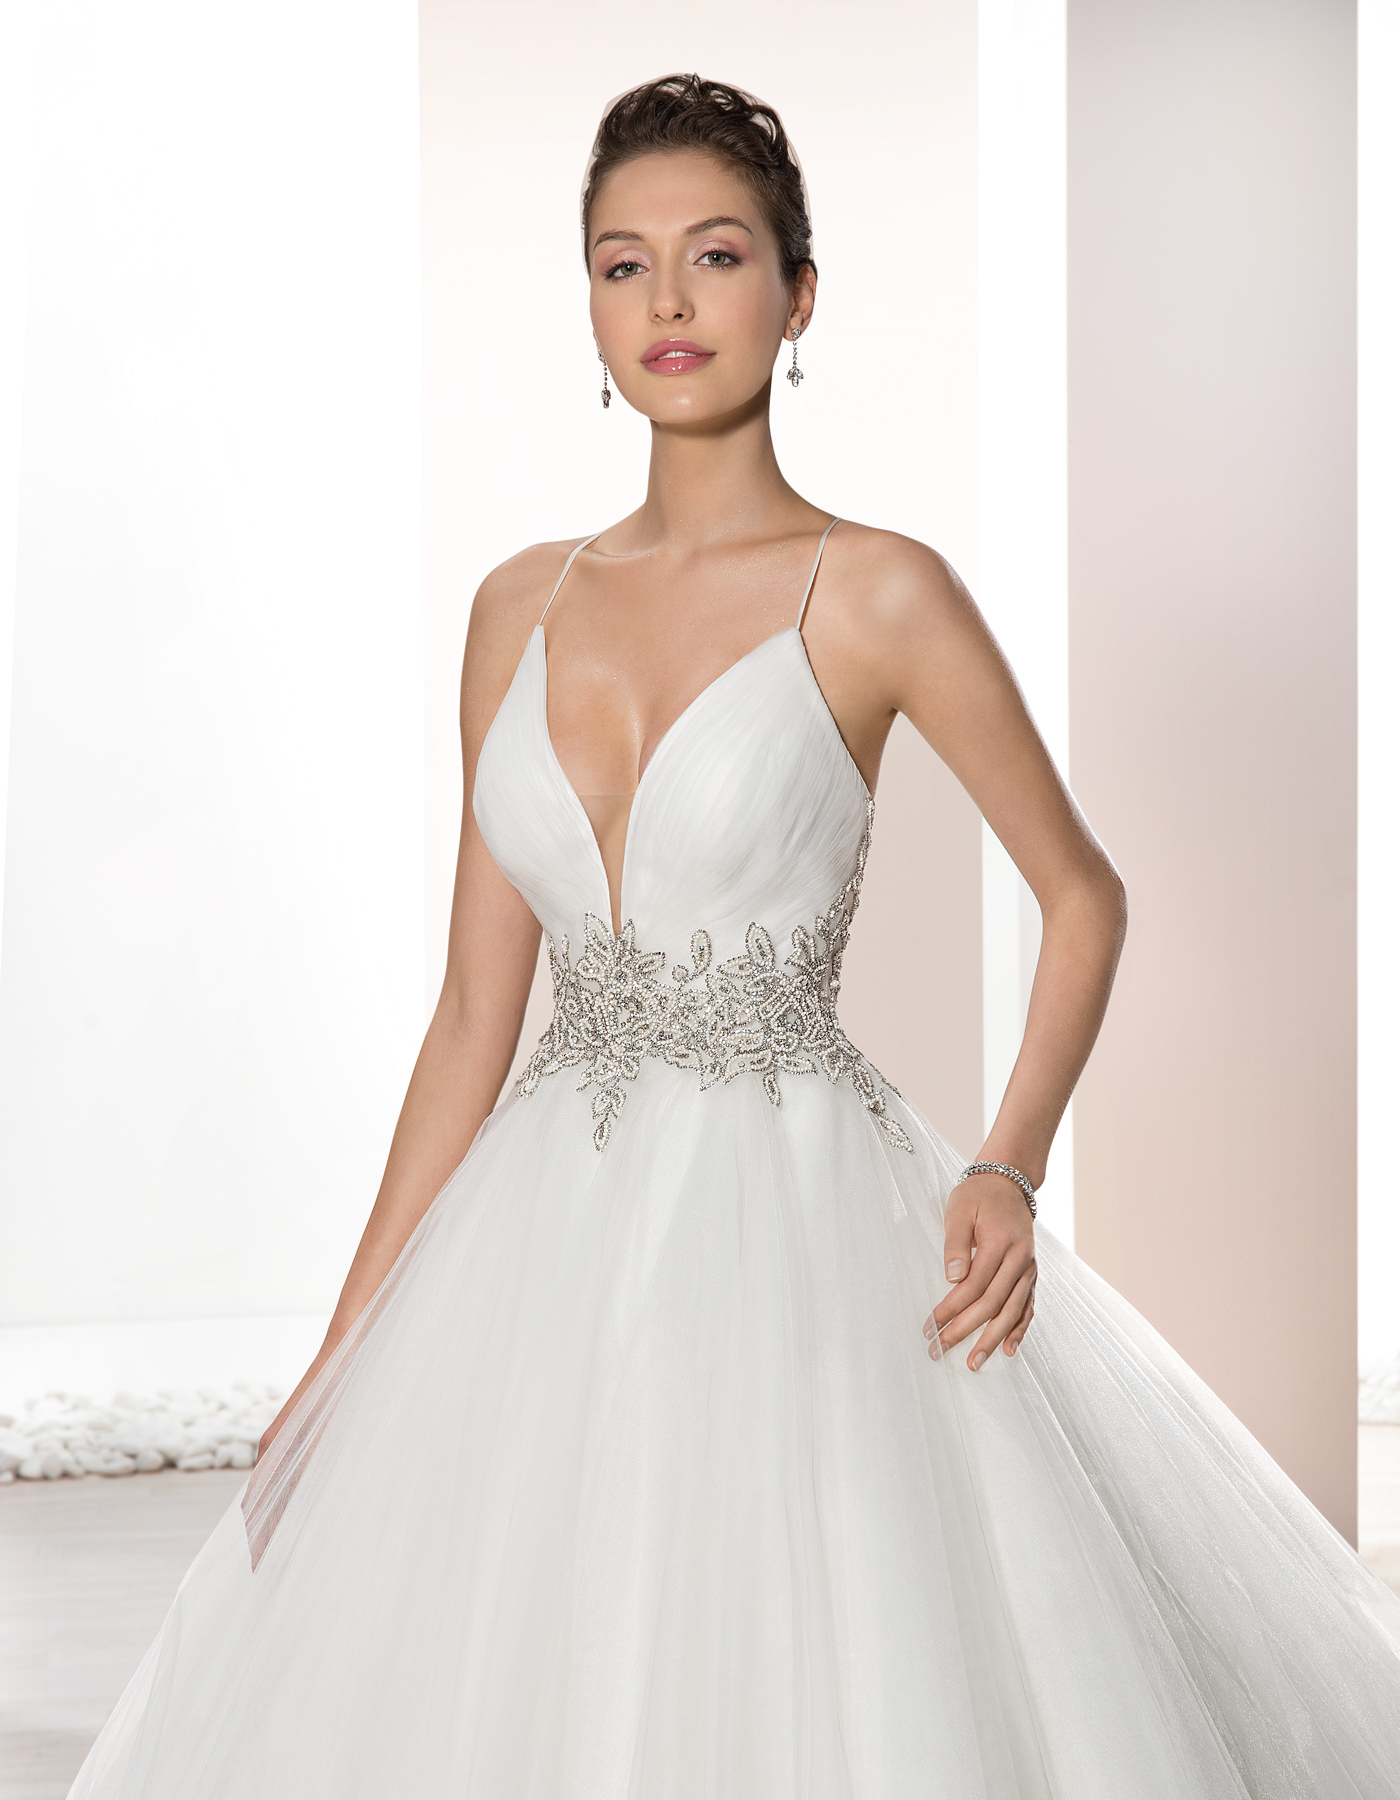 725 By Demetrios Tulle Ball Gown With Plunging Neckline